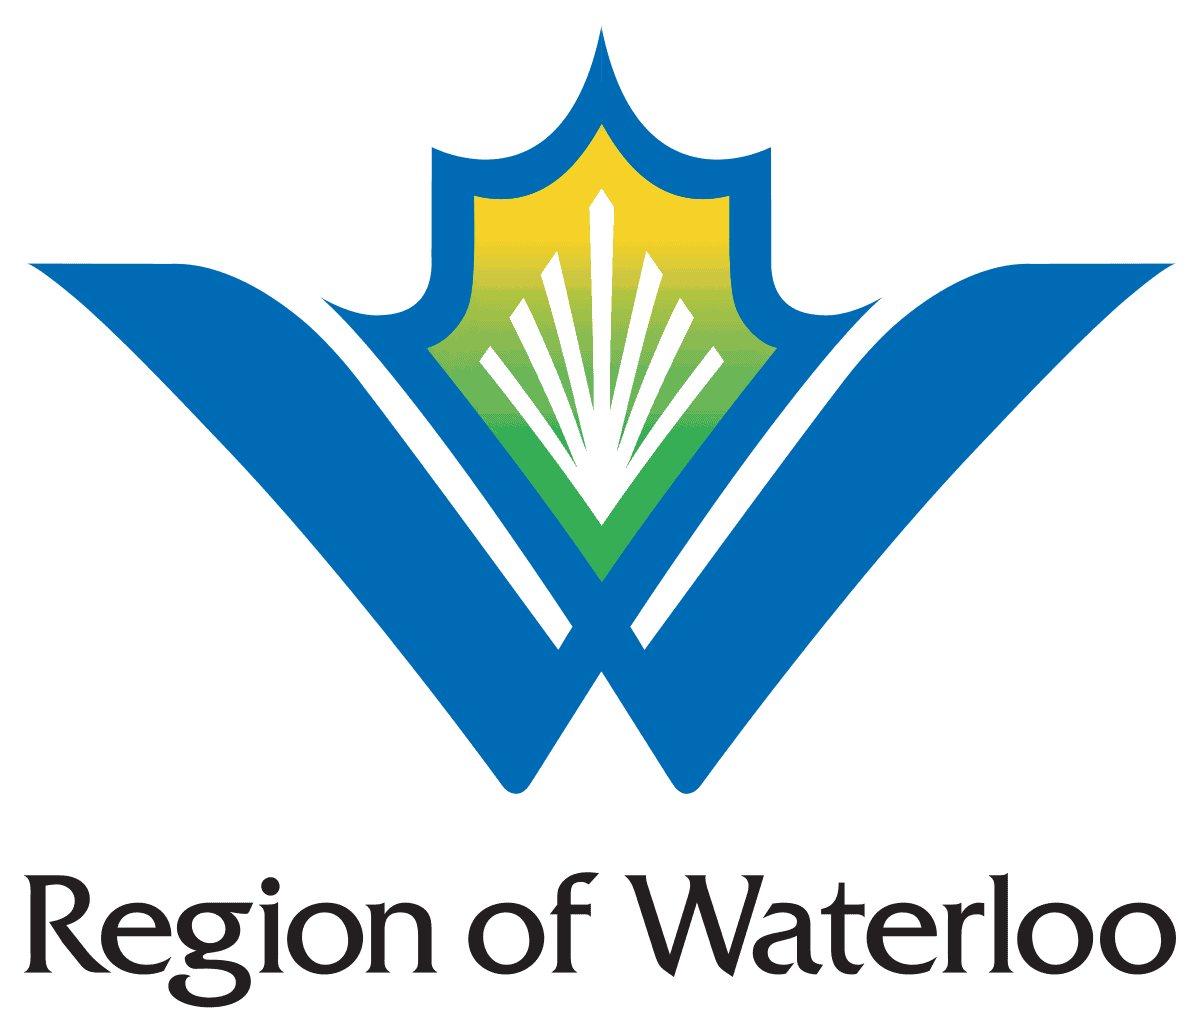 Region-of-Waterloo